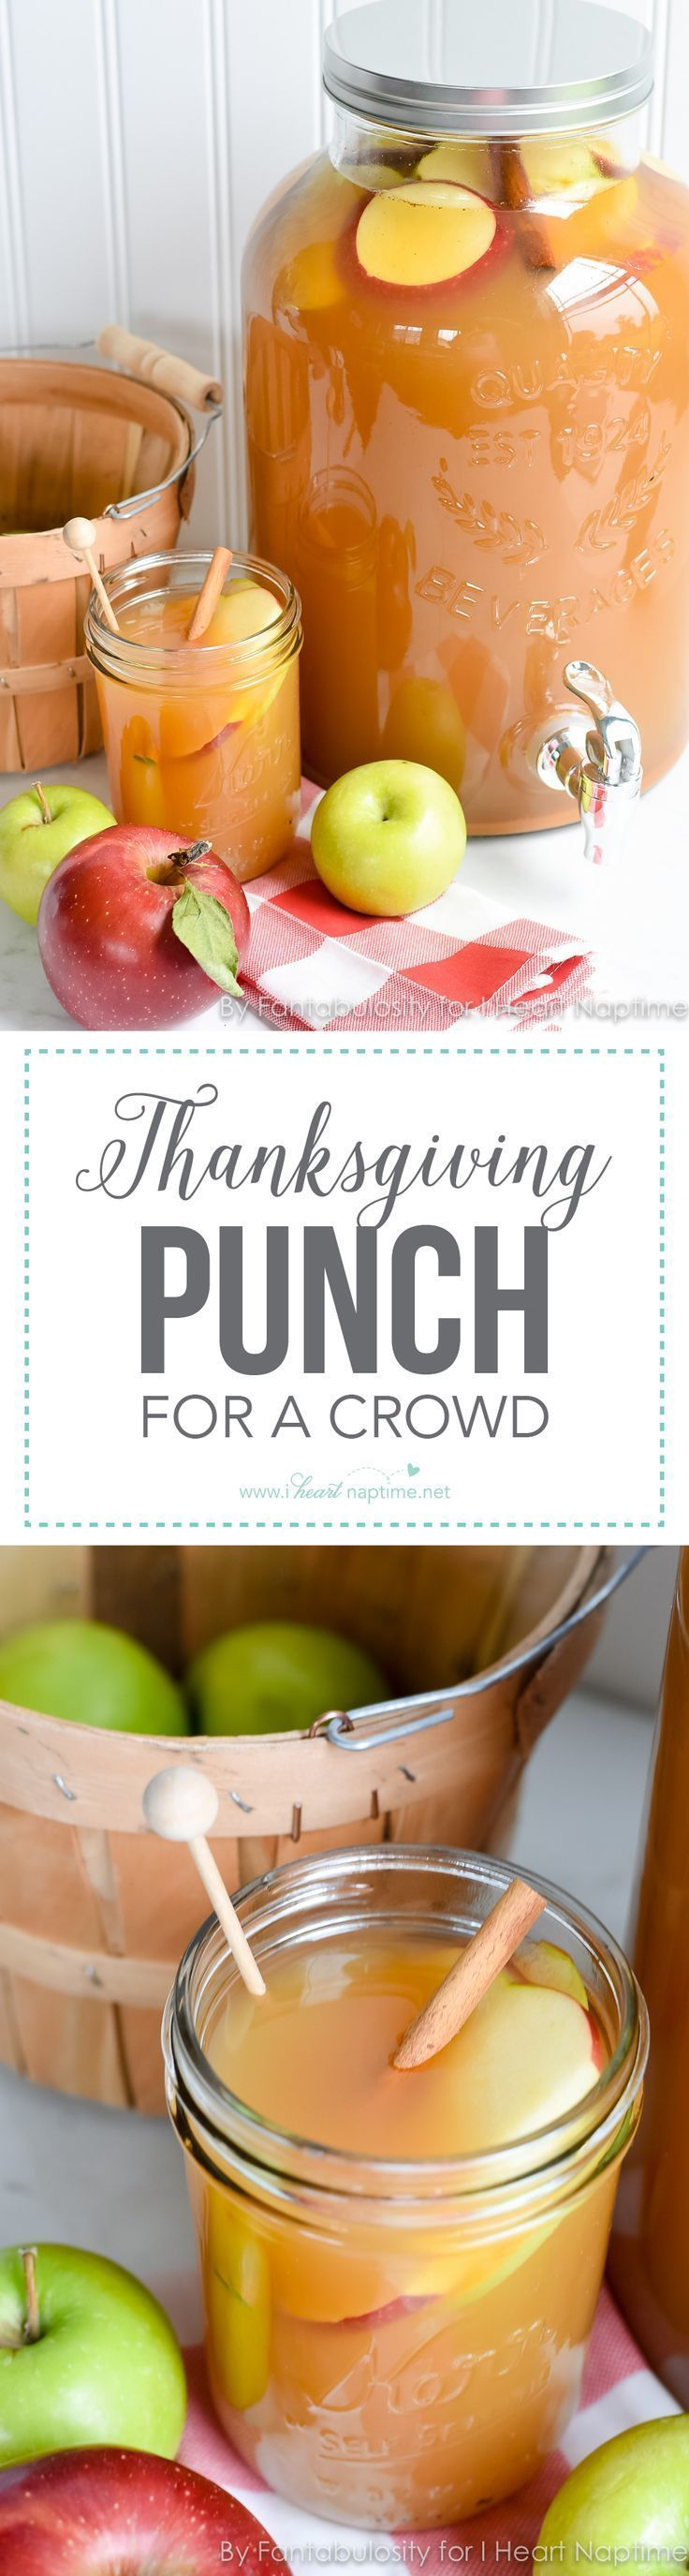 Thanksgiving Punch for a Crowd ...this easy, fall beverage favorite will be a delicious option this Thanksgiving when entertaining your family and friends!